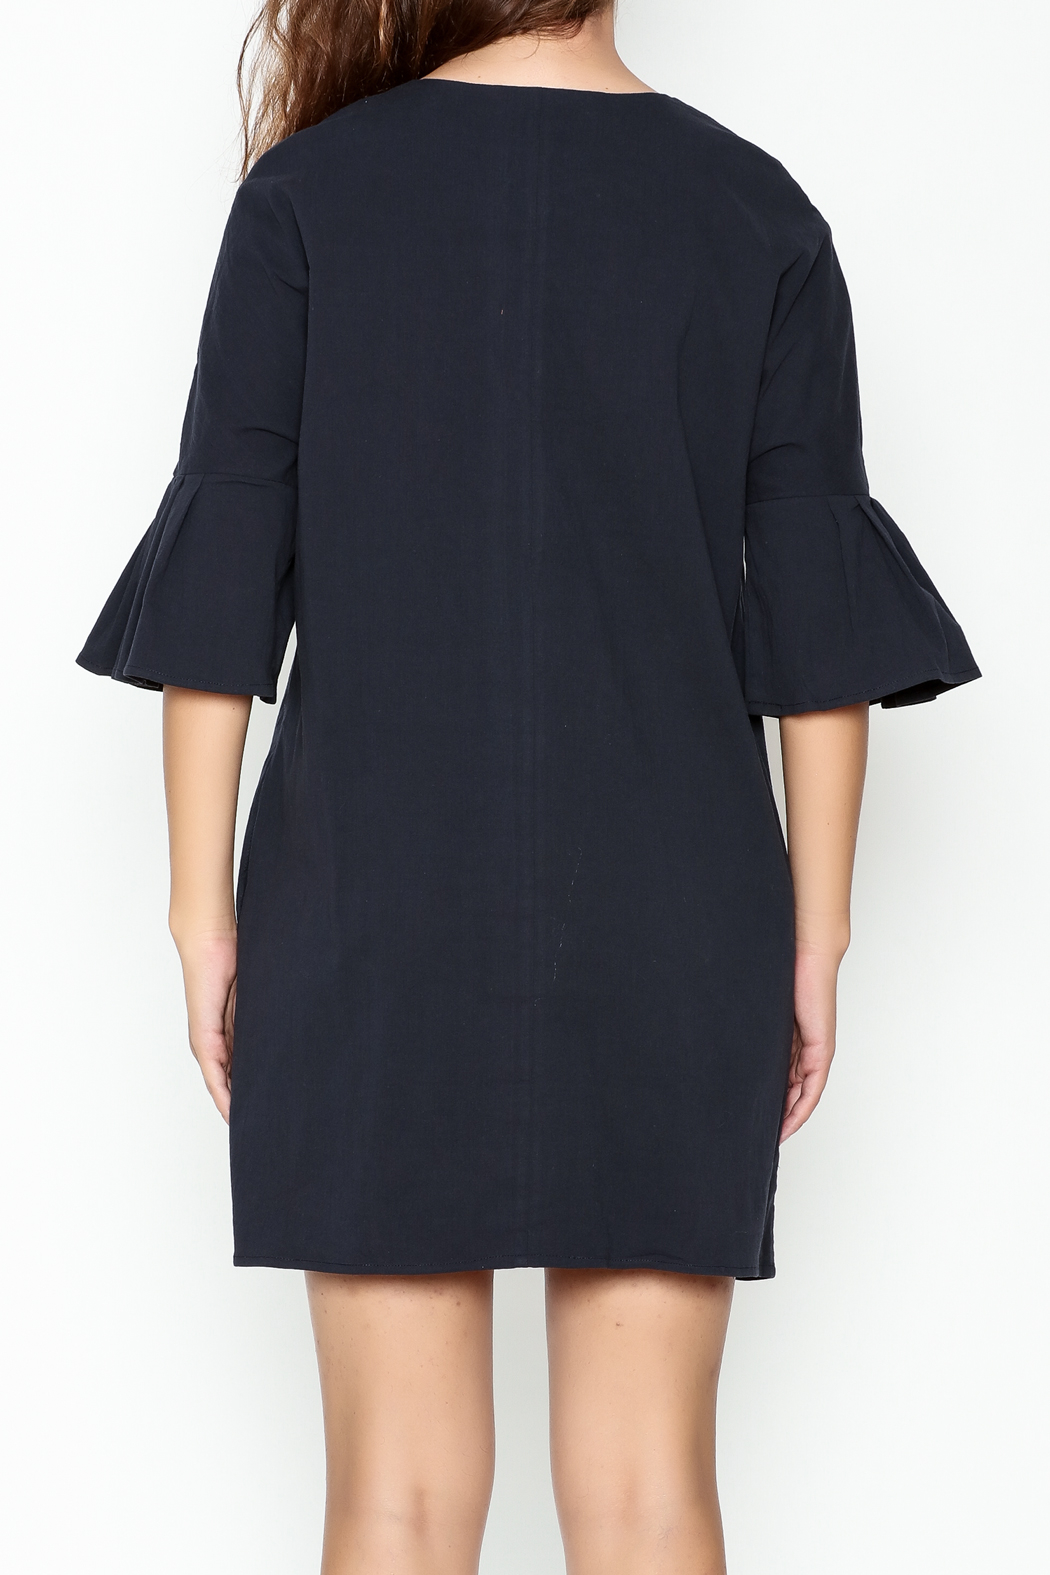 Everly Grommet Dress - Back Cropped Image